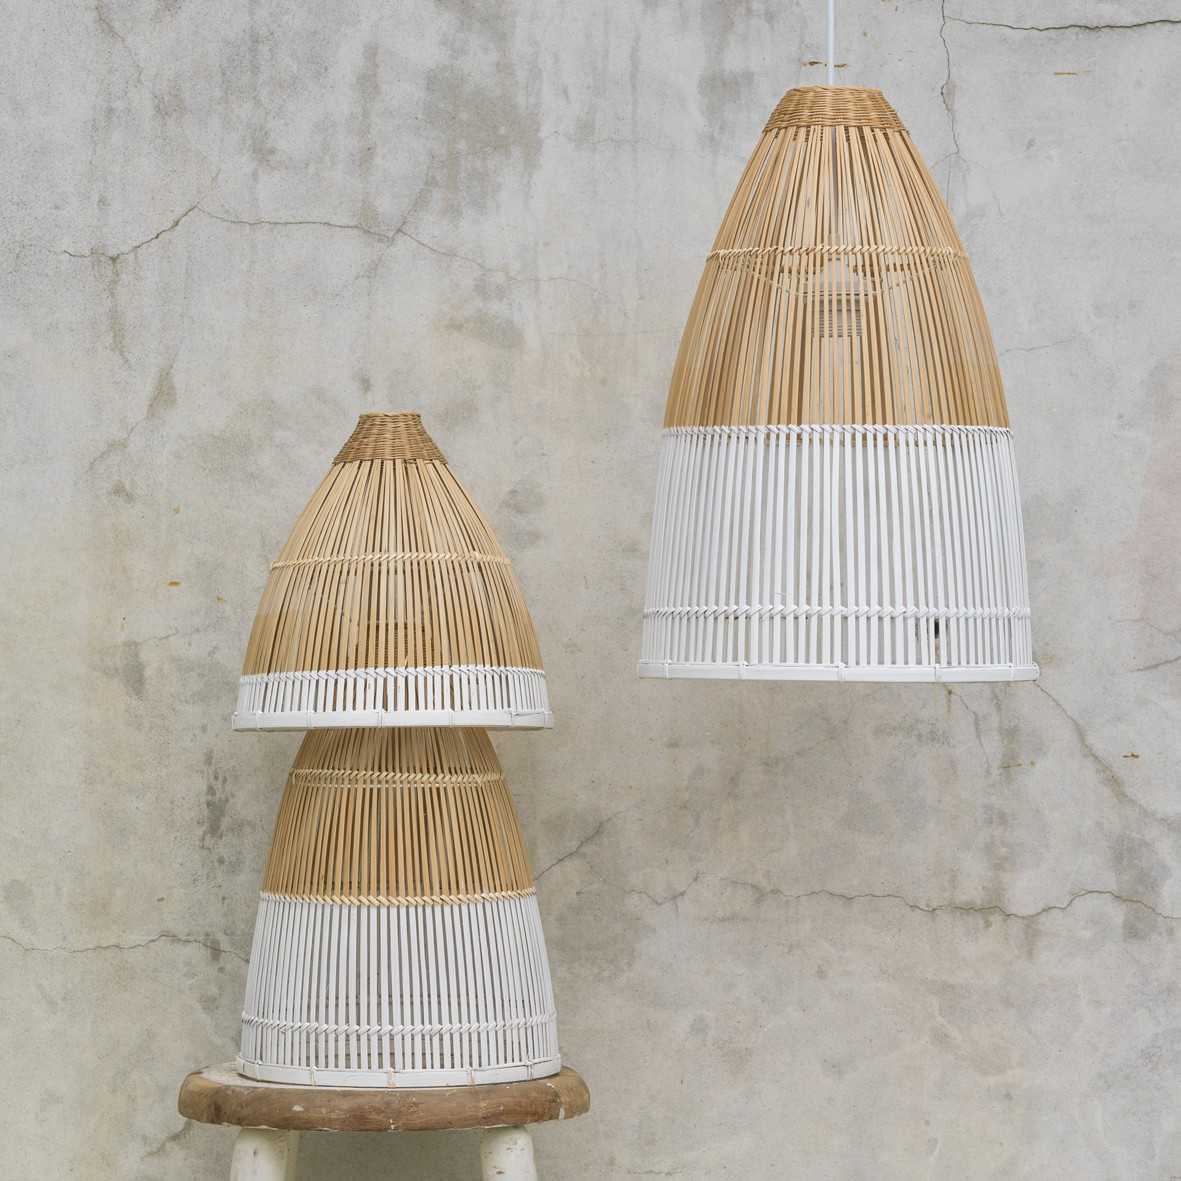 Dipped bamboo lights set of modern twotone dipped bamboo